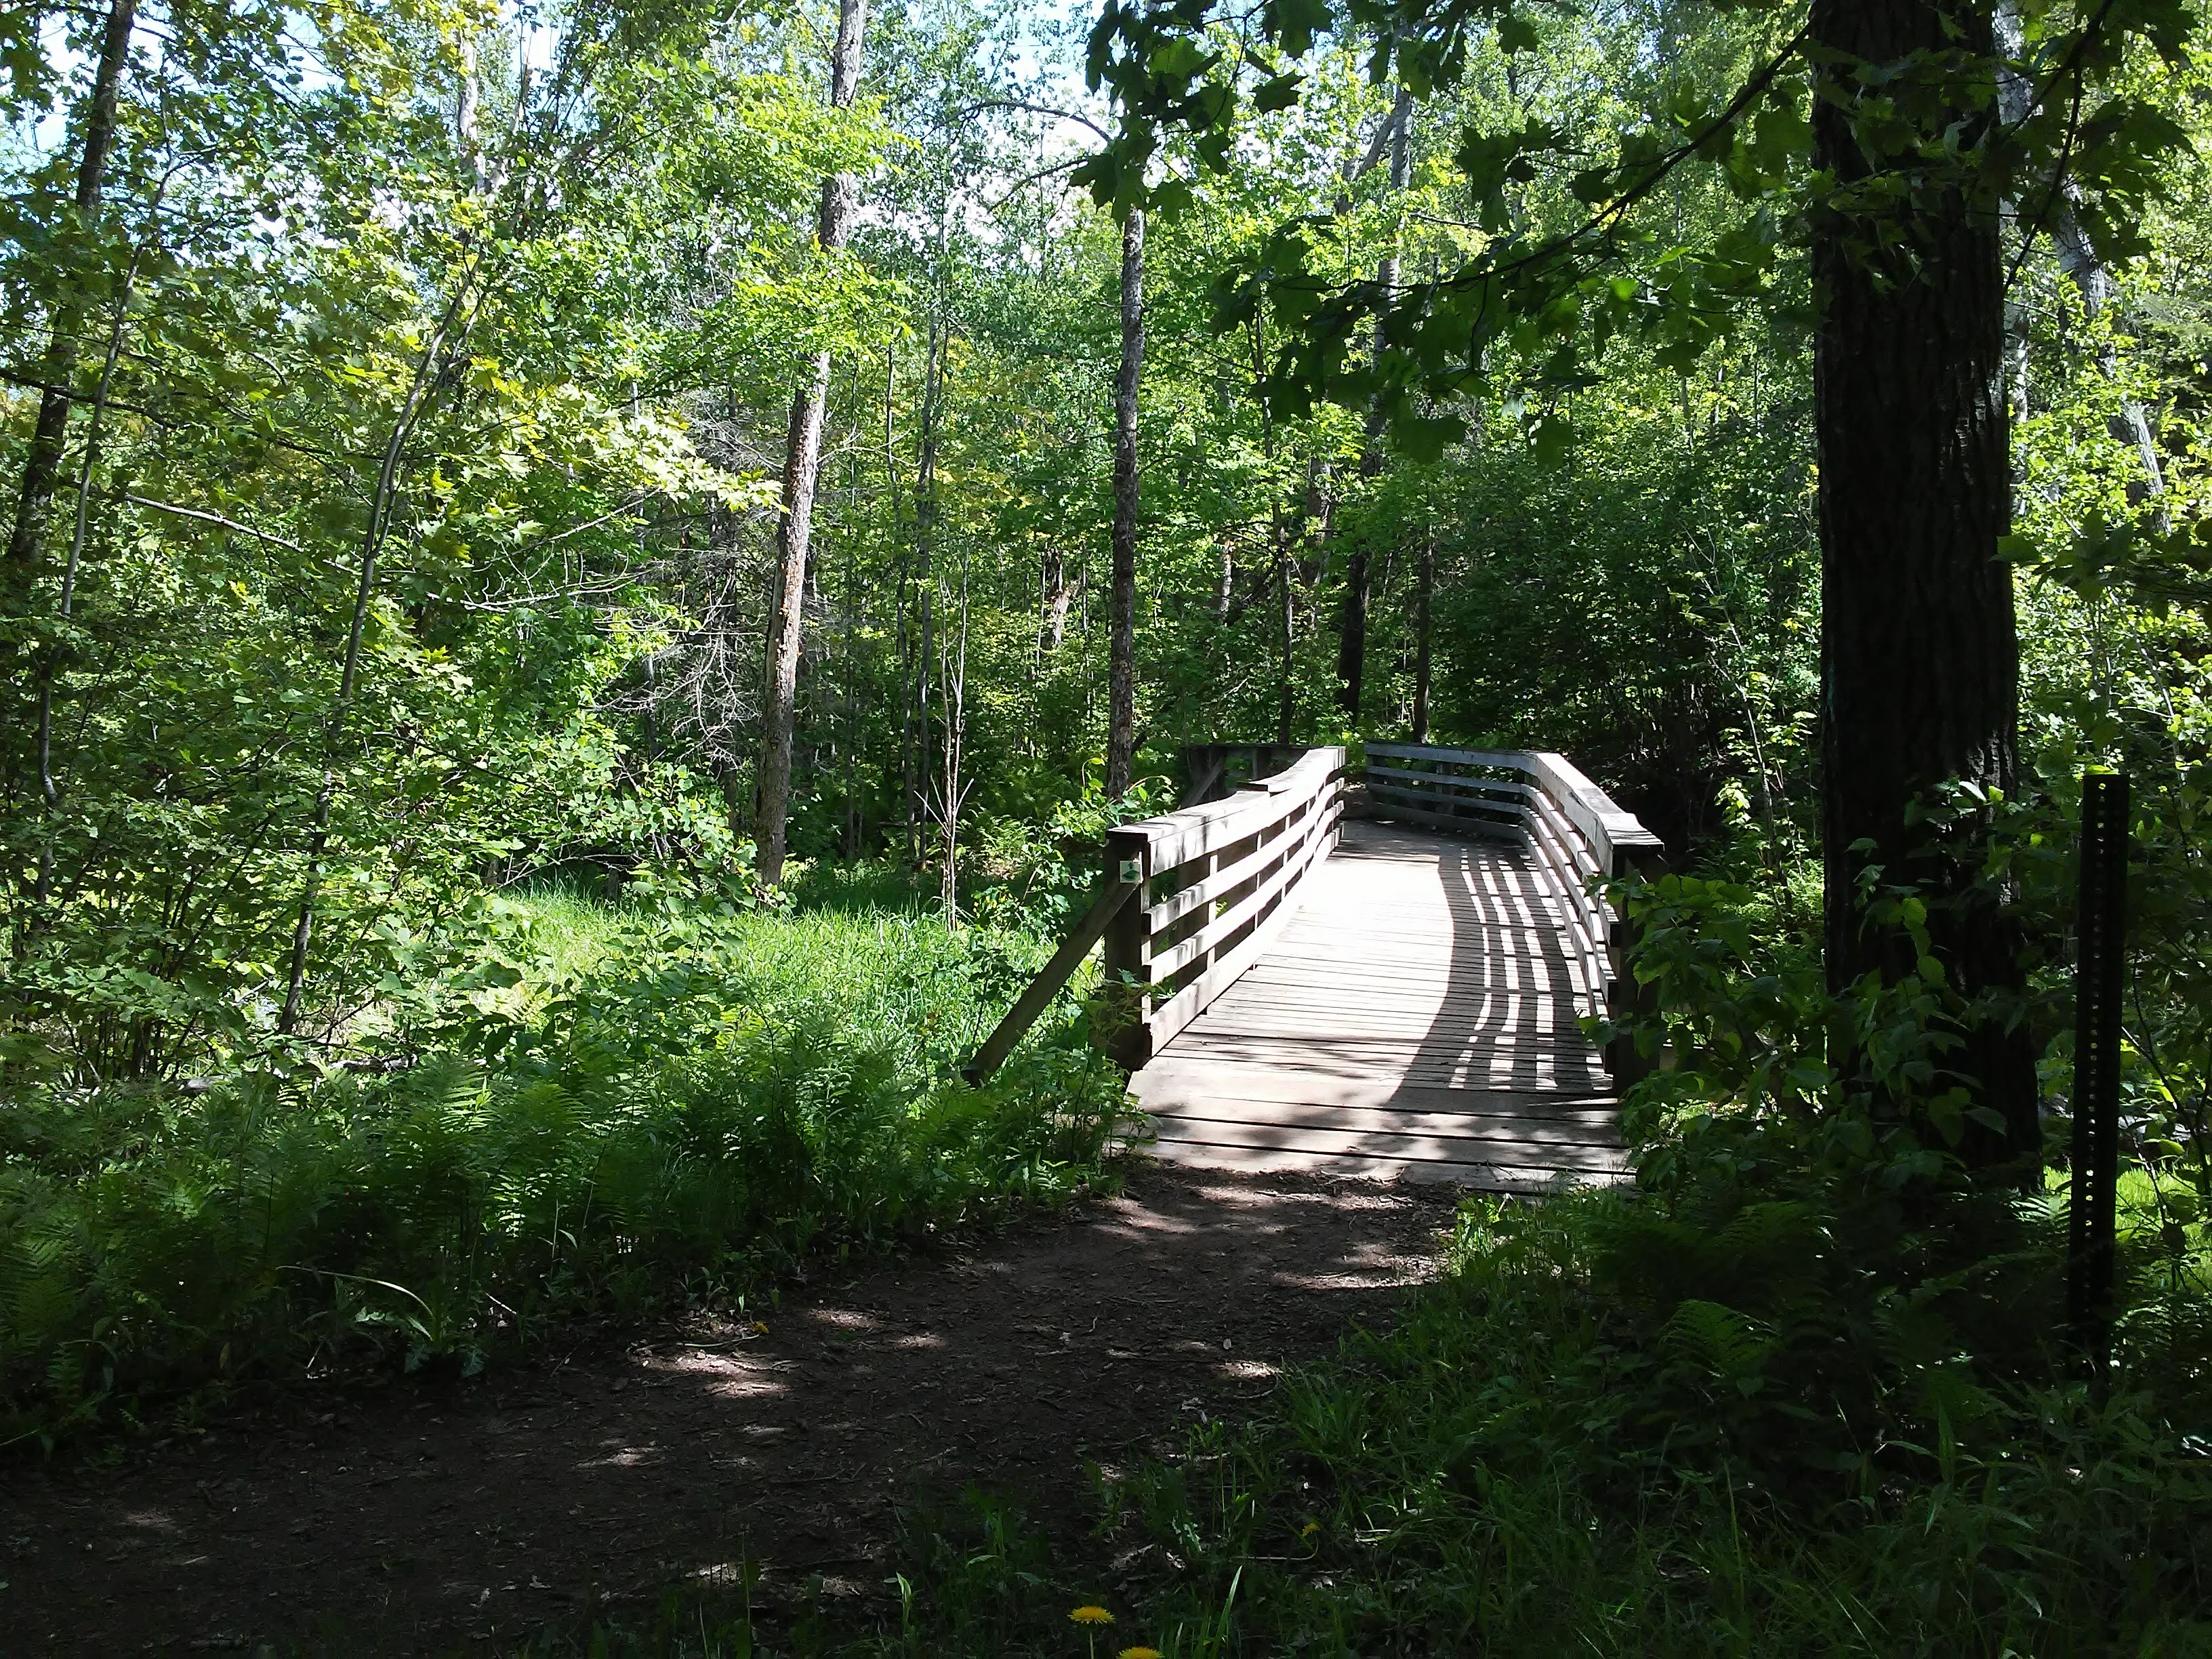 Wood bridge over a stream in Bagley Nature Area, Duluth